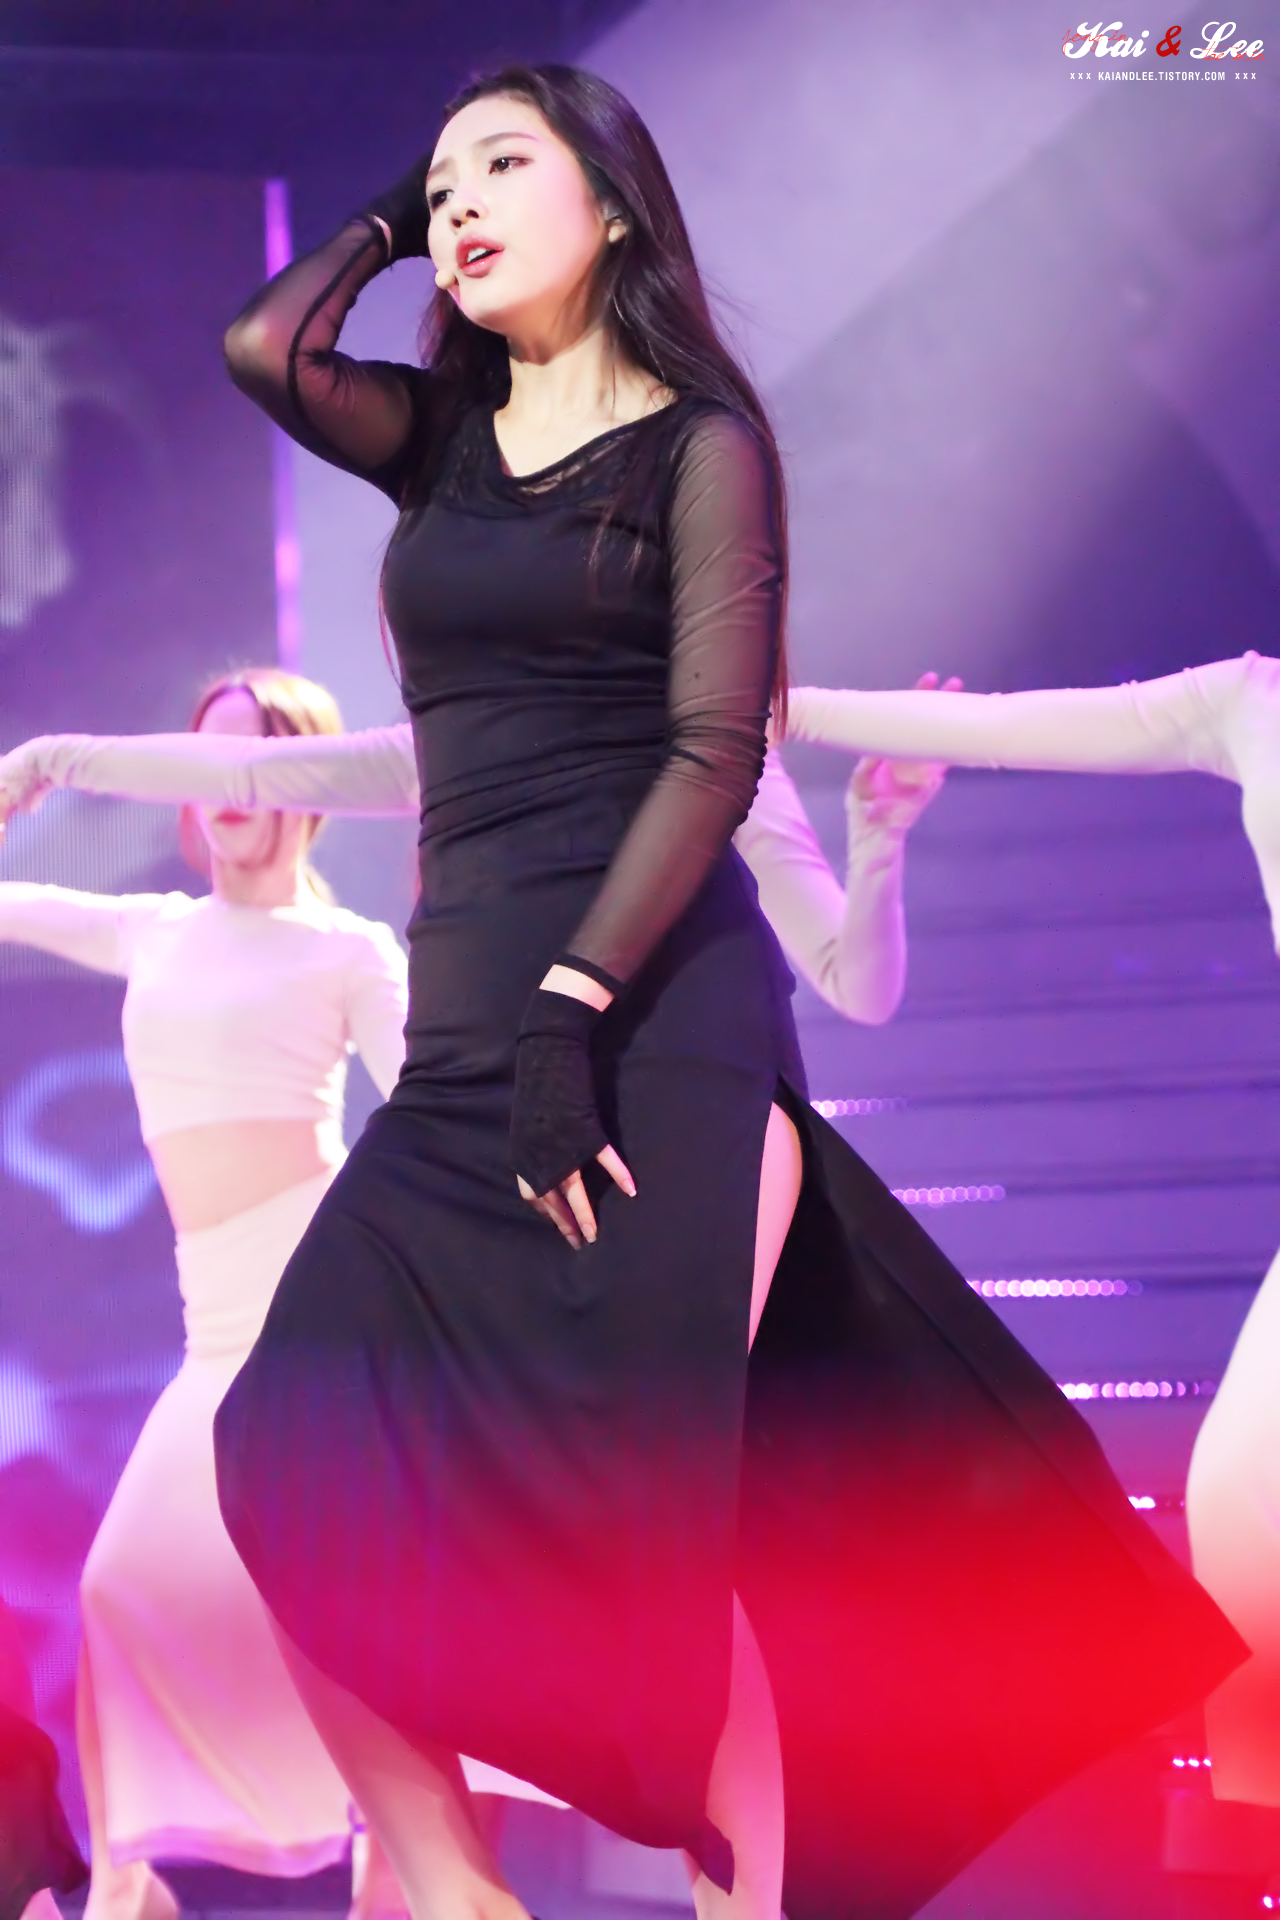 Red Velvet Joy Mbc Gayo Daejejeon Park Joy 照片 38135701 潮流粉丝俱乐部